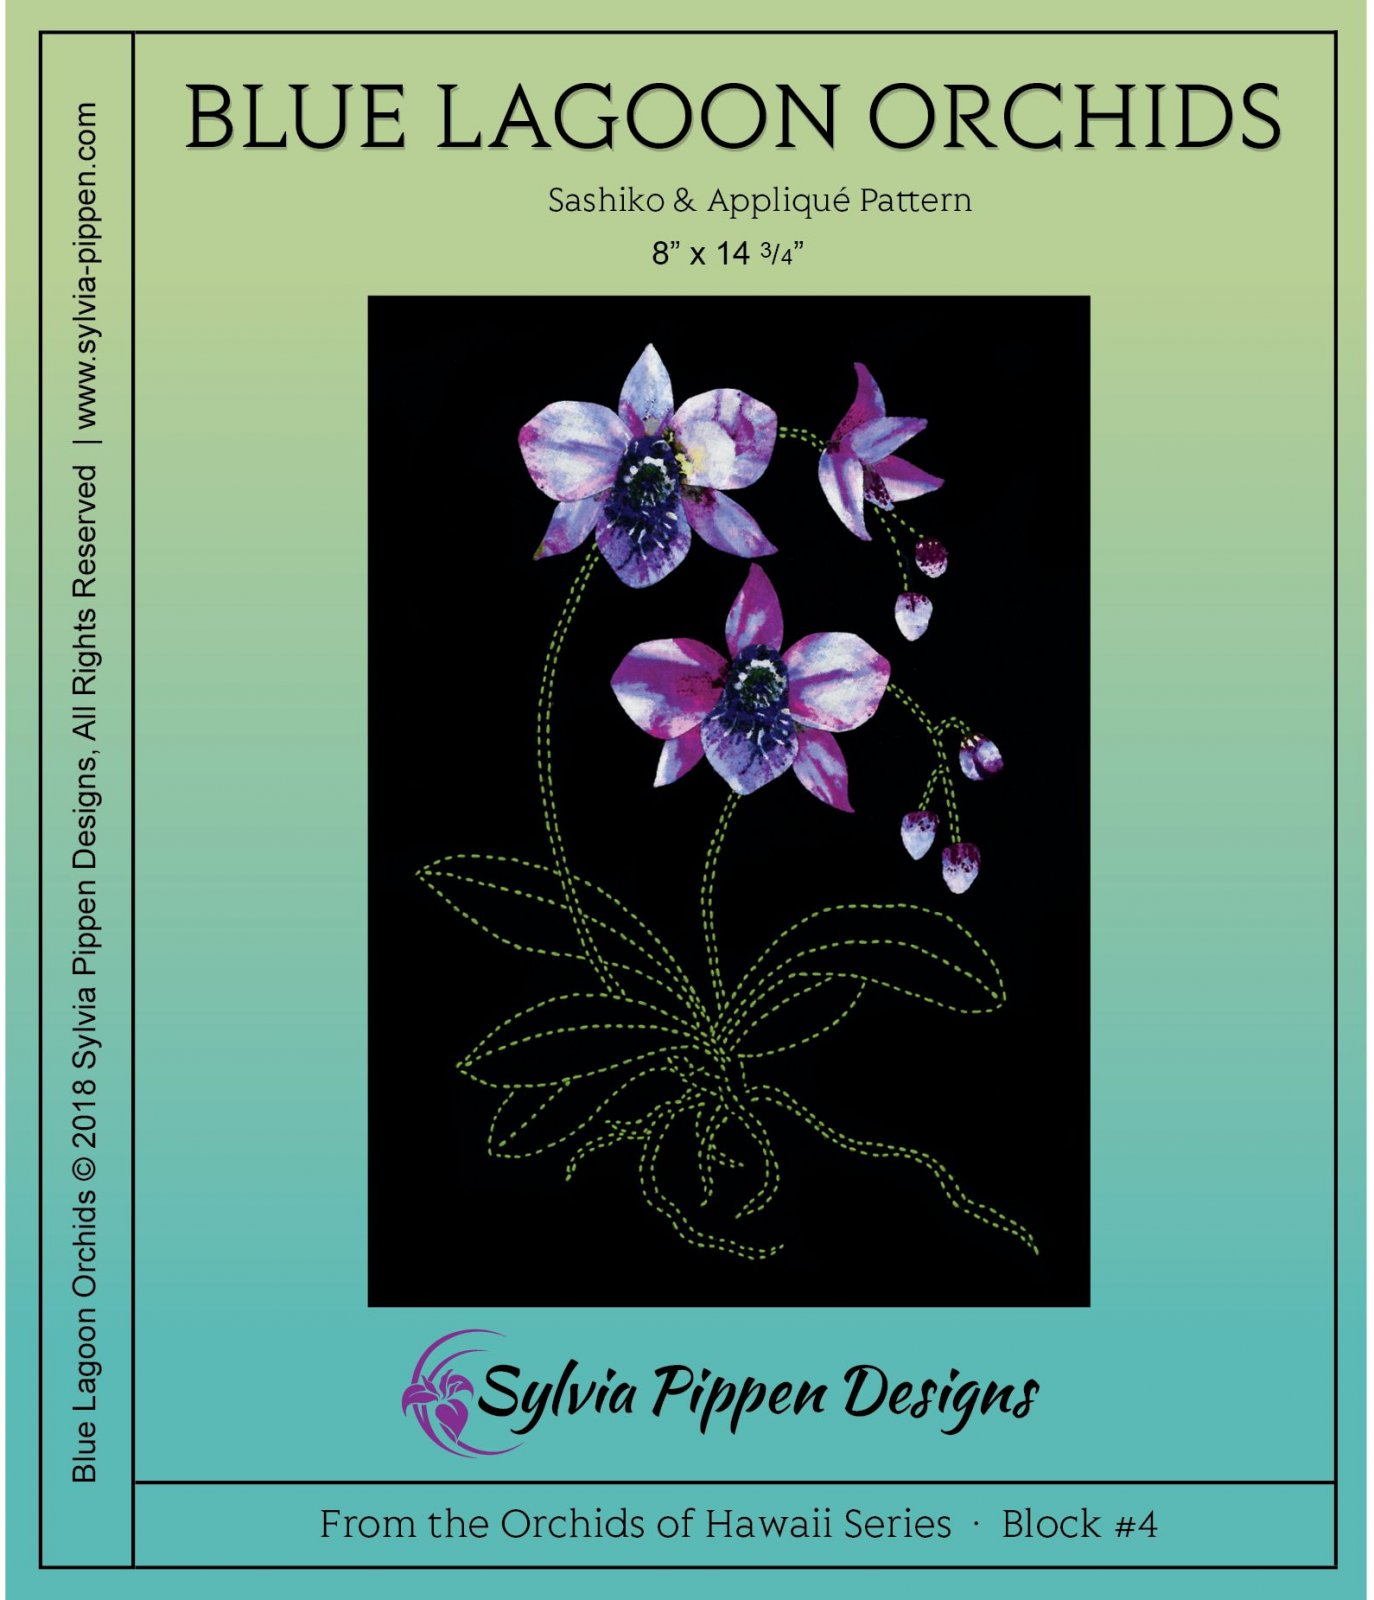 Blue lagoon Orchids Sashiko & Applique Fabric Kit from Orchids of Hawaii series